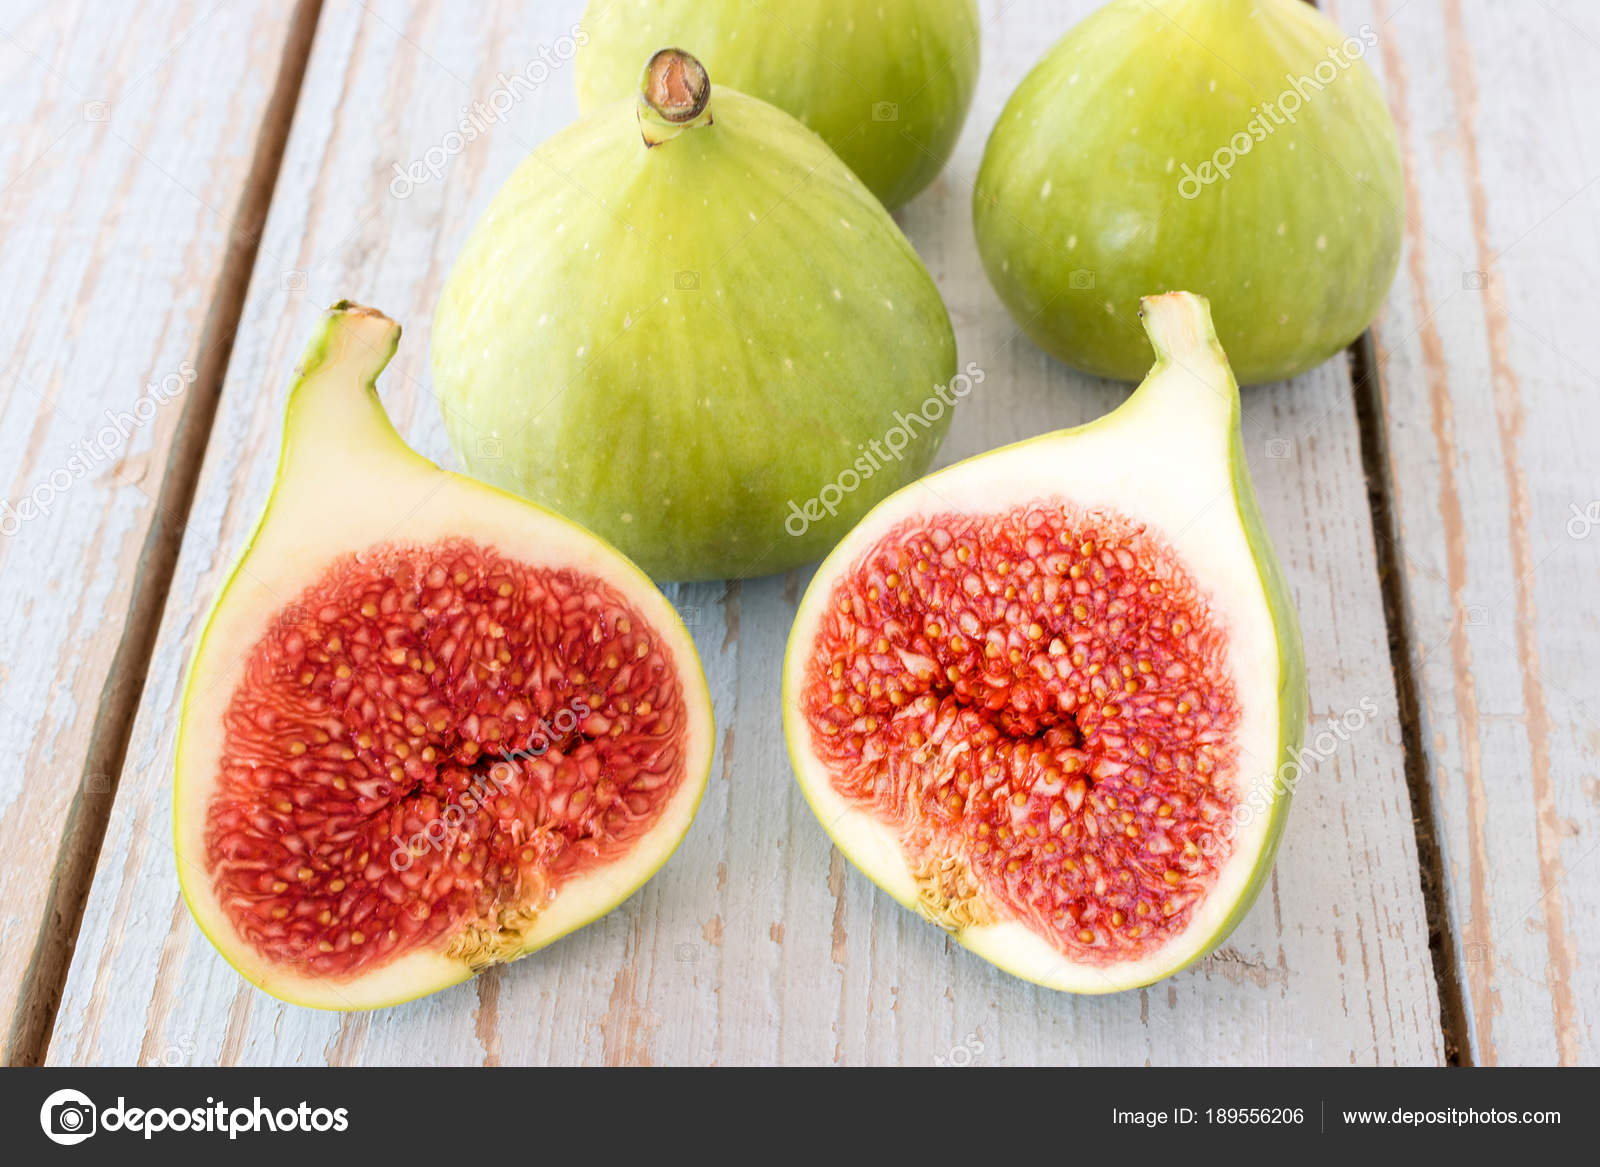 Whole Figs One Fig Sliced Half Top Garden Table Focus